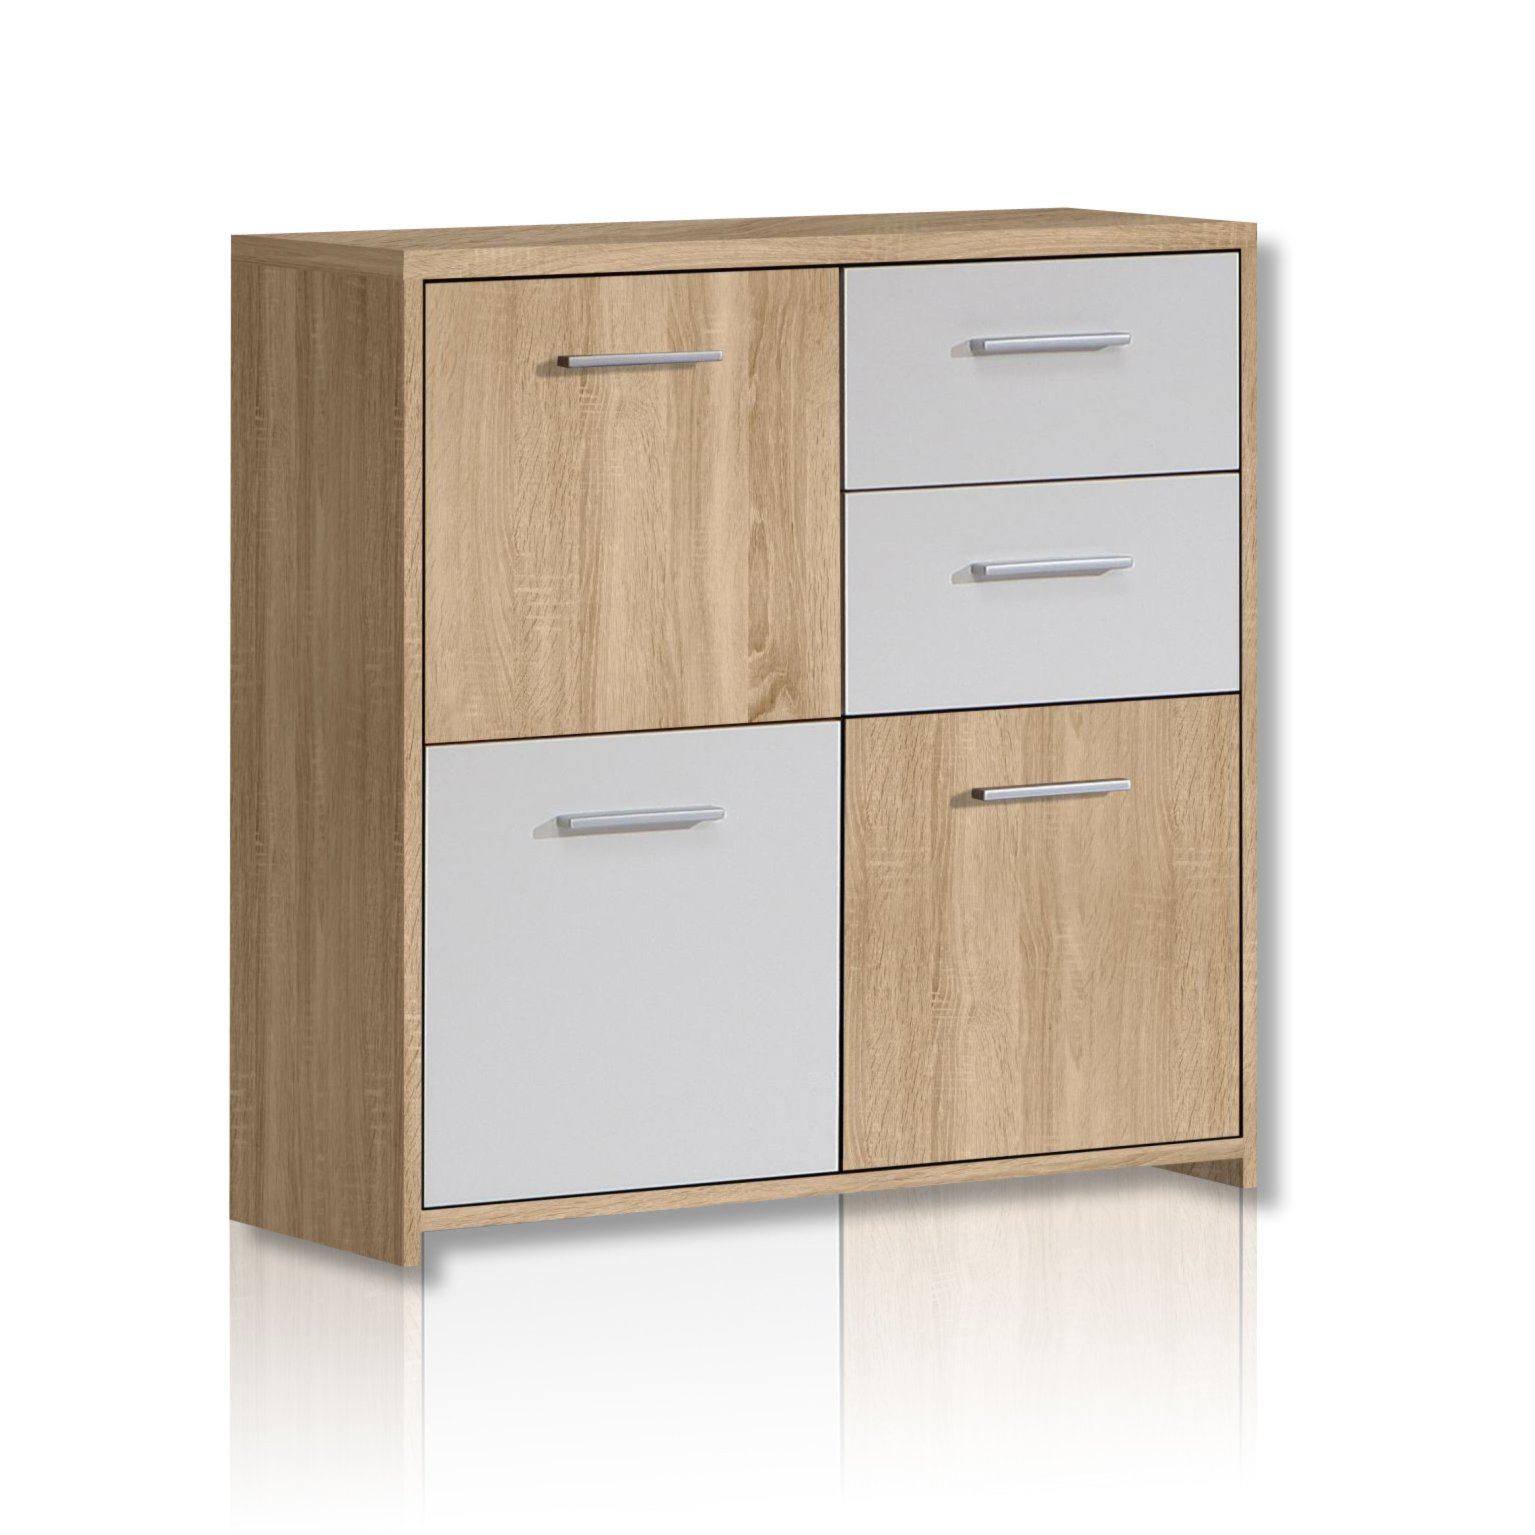 kommode quadro sonoma eiche wei kommoden sideboards m bel roller m belhaus. Black Bedroom Furniture Sets. Home Design Ideas